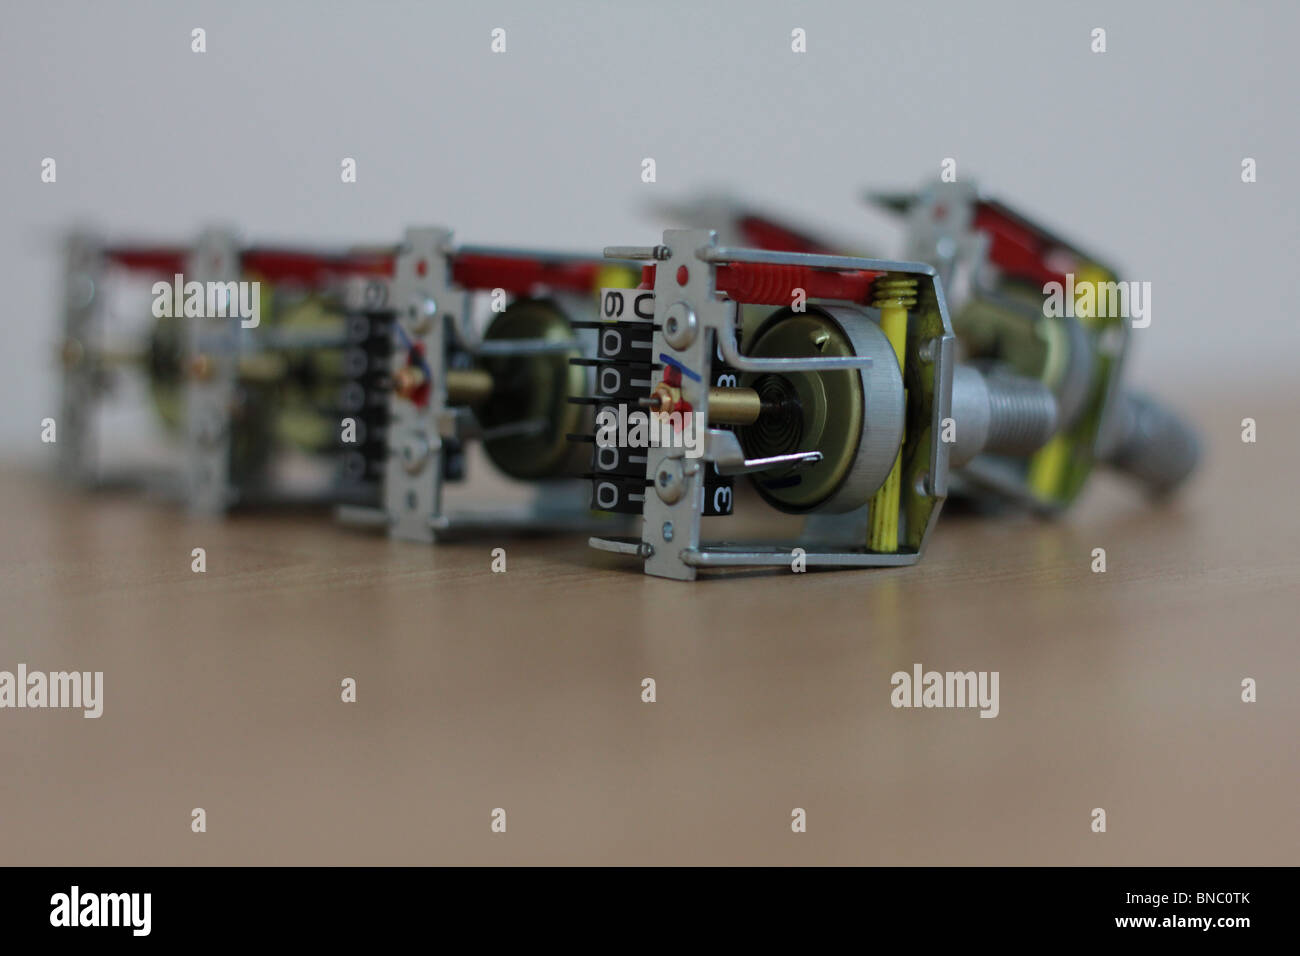 The Movement Assemblies of Automotive Speedometers - Stock Image